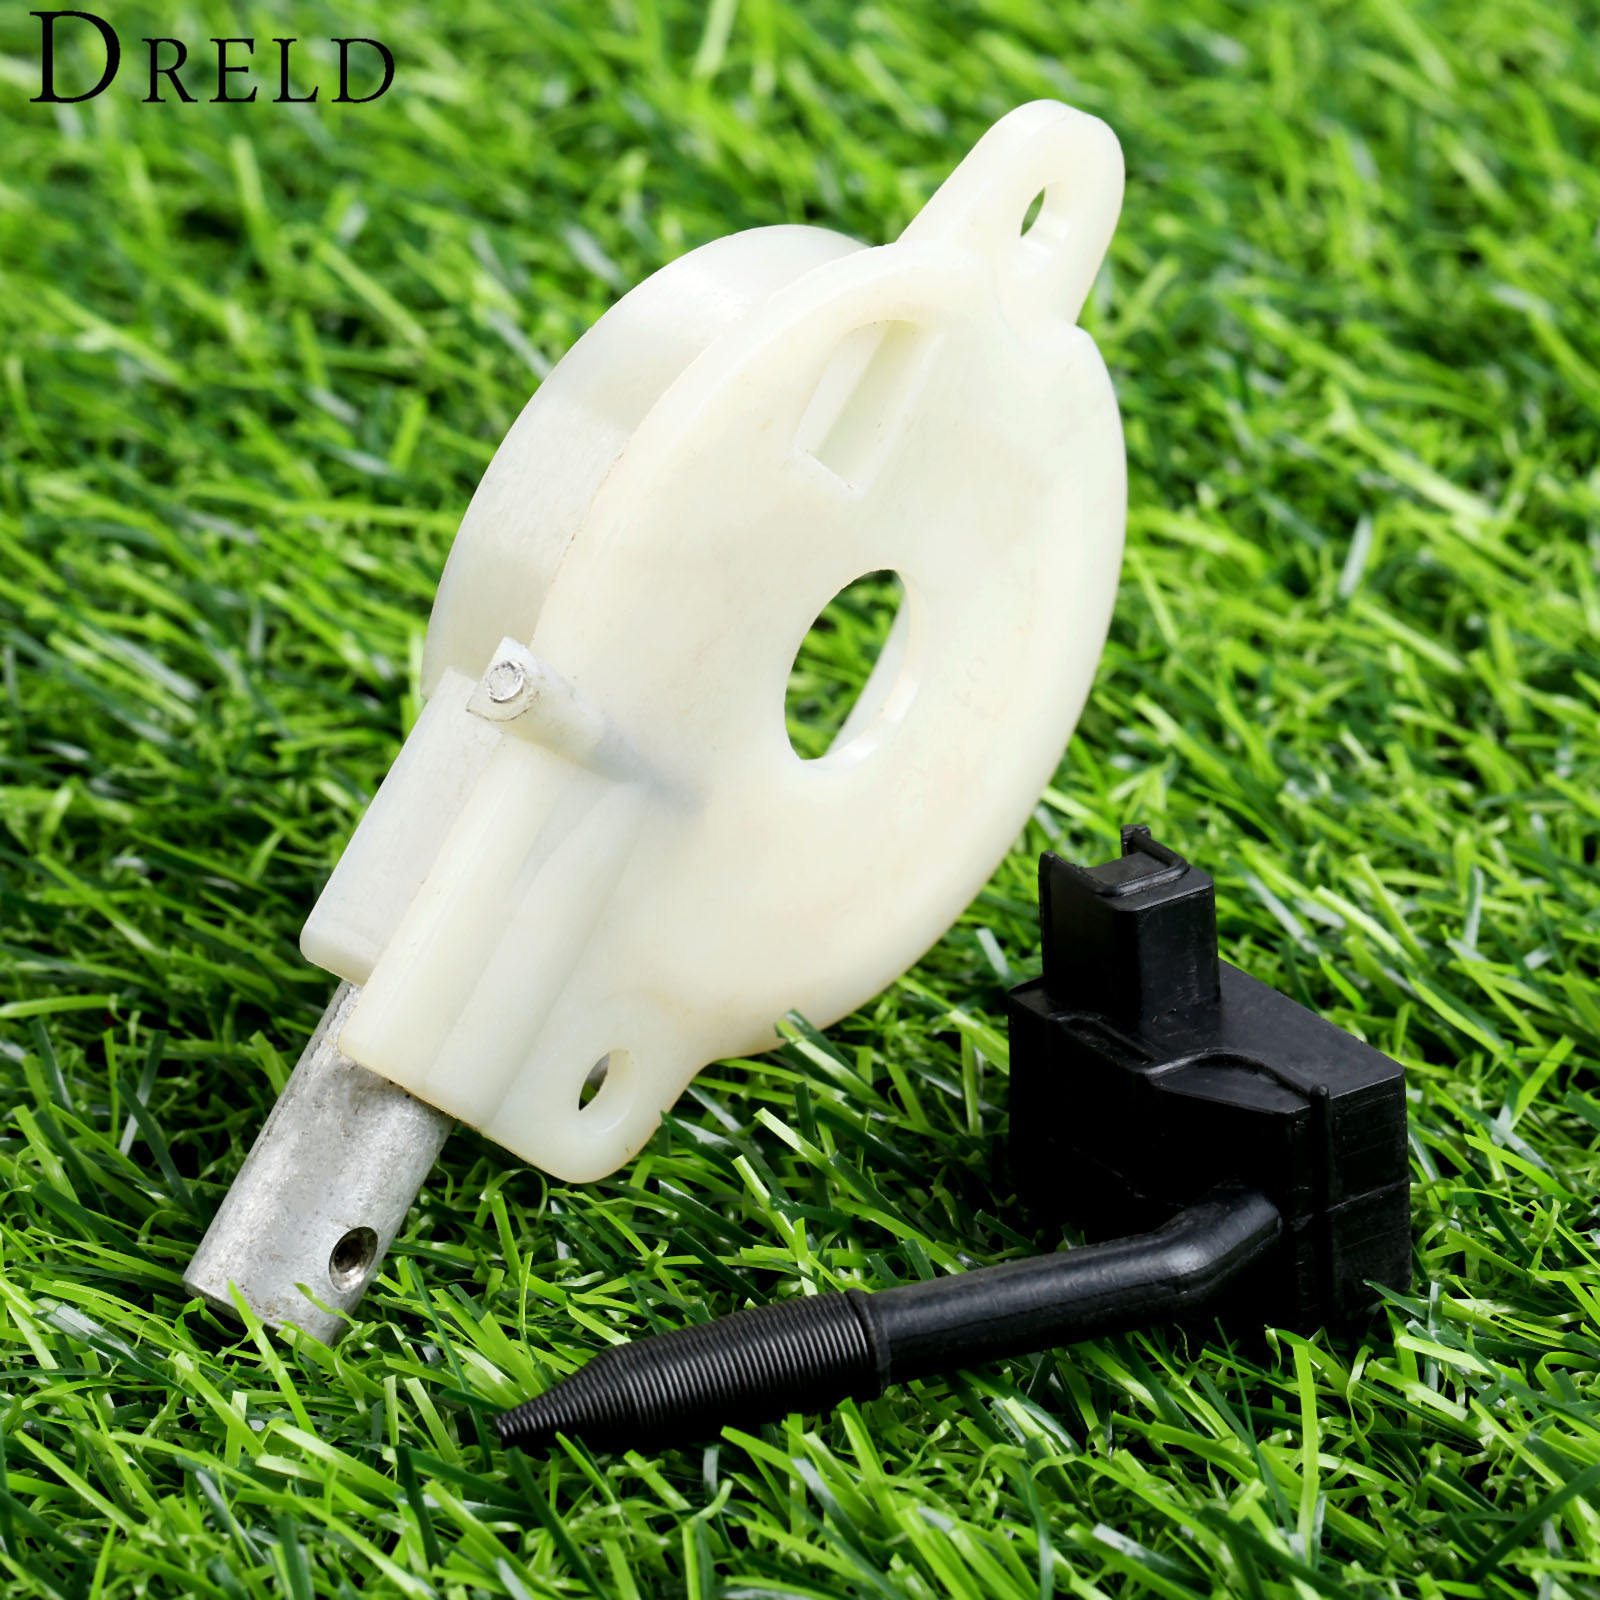 DRELD 1Pc Oil Pump Oiler Garden Tool Parts For Husqvarna 36 41 136 137 141 142 Jonsered 2036 2040 Chainsaw Parts